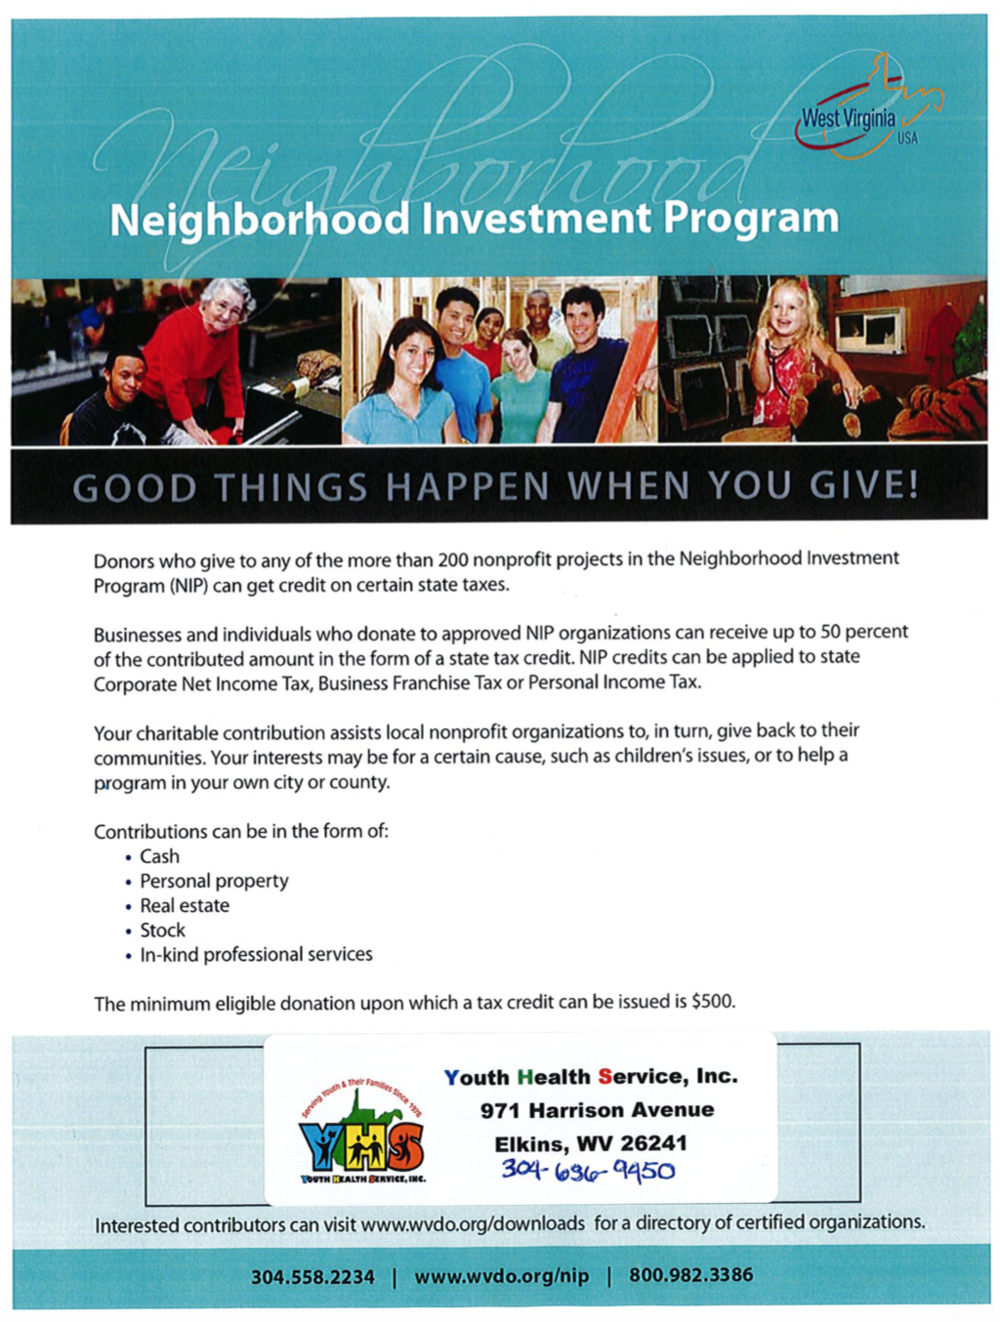 YHS Neighborhood Investment Program